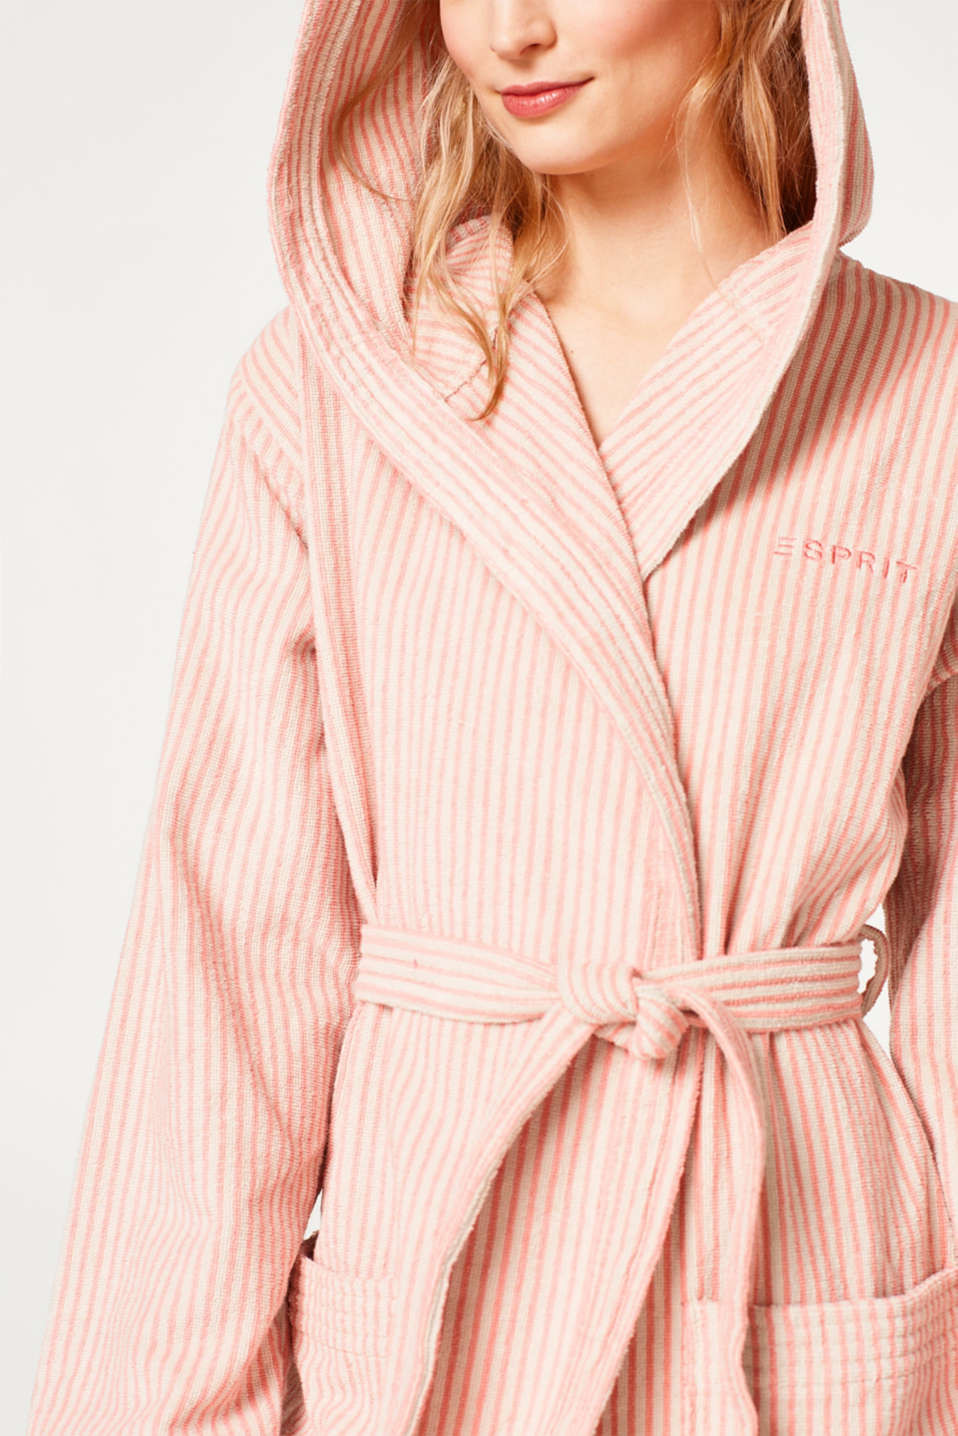 Terrycloth bathrobe in 100% cotton, OATMEAL/DUSTY, detail image number 1